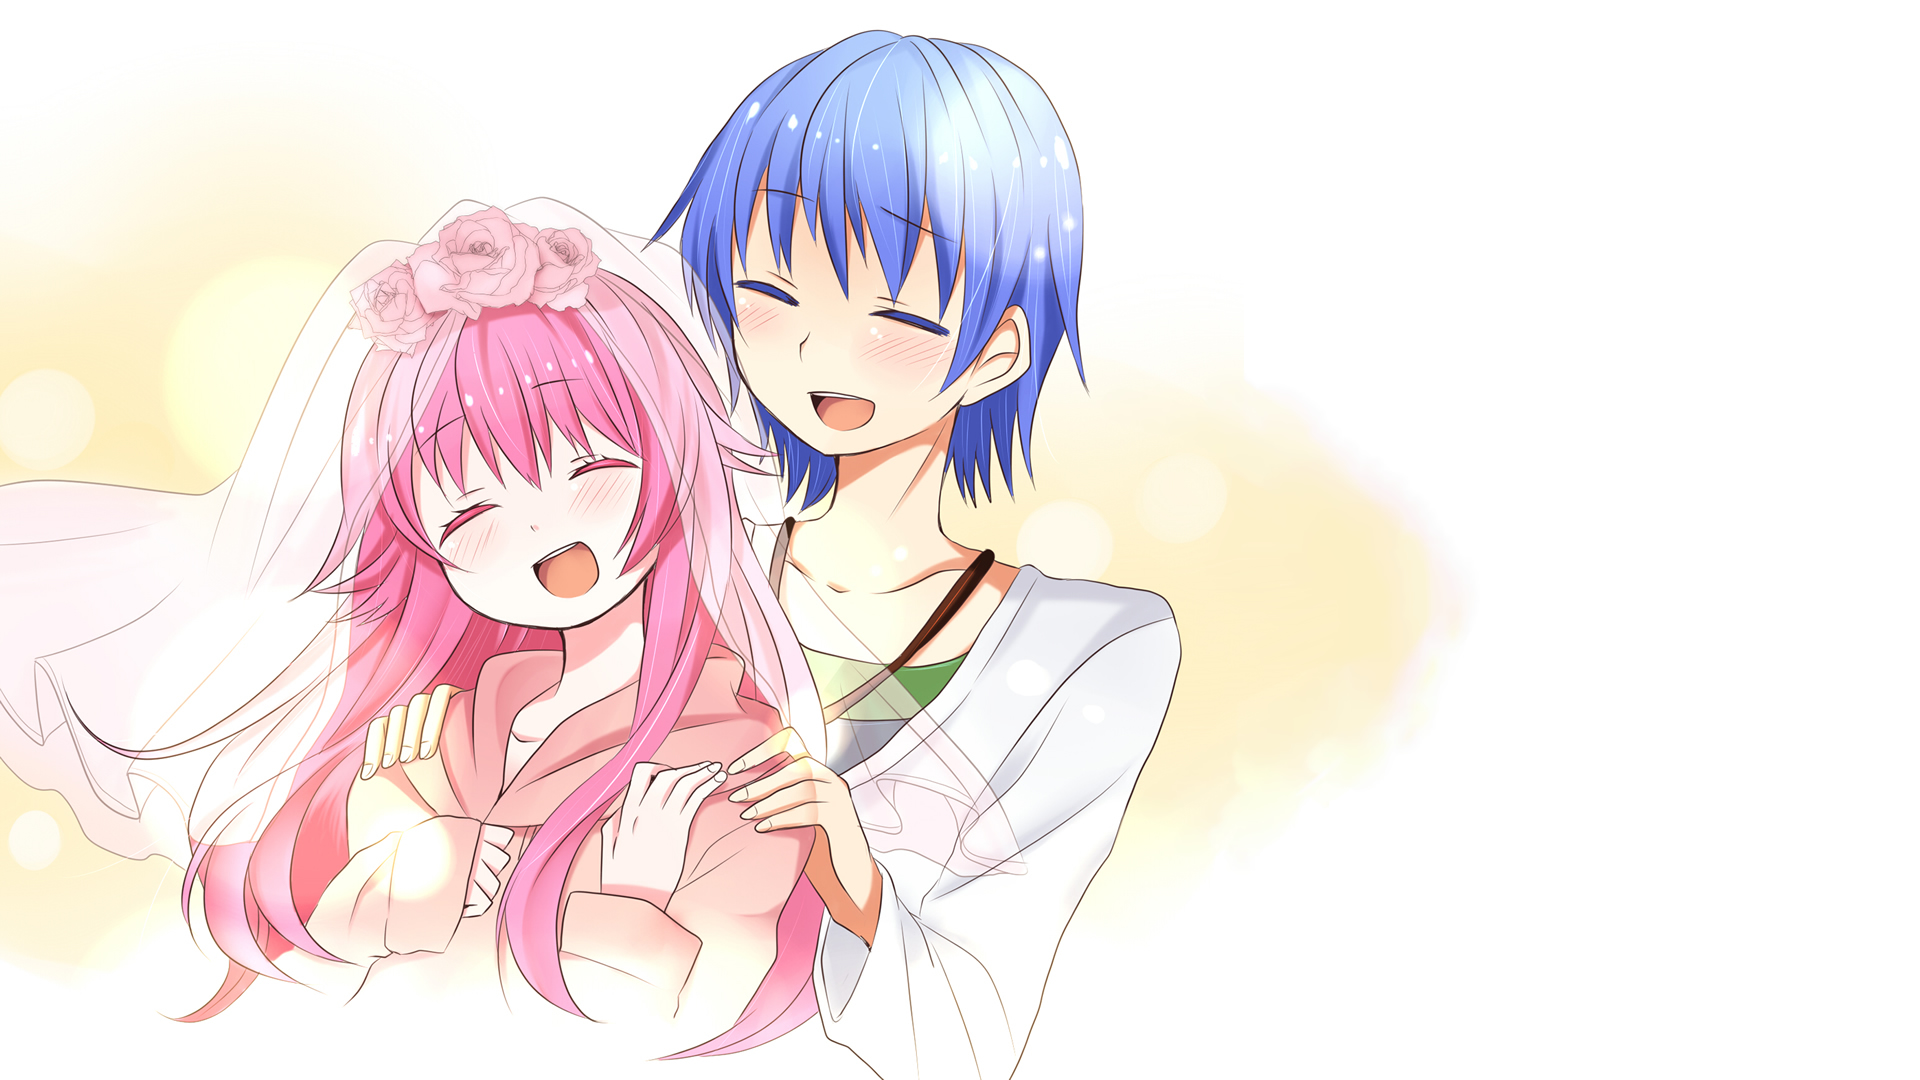 Sad Girl And Boy Full Hd Wallpapers Angel Beats Hd Wallpaper Background Image 1920x1080